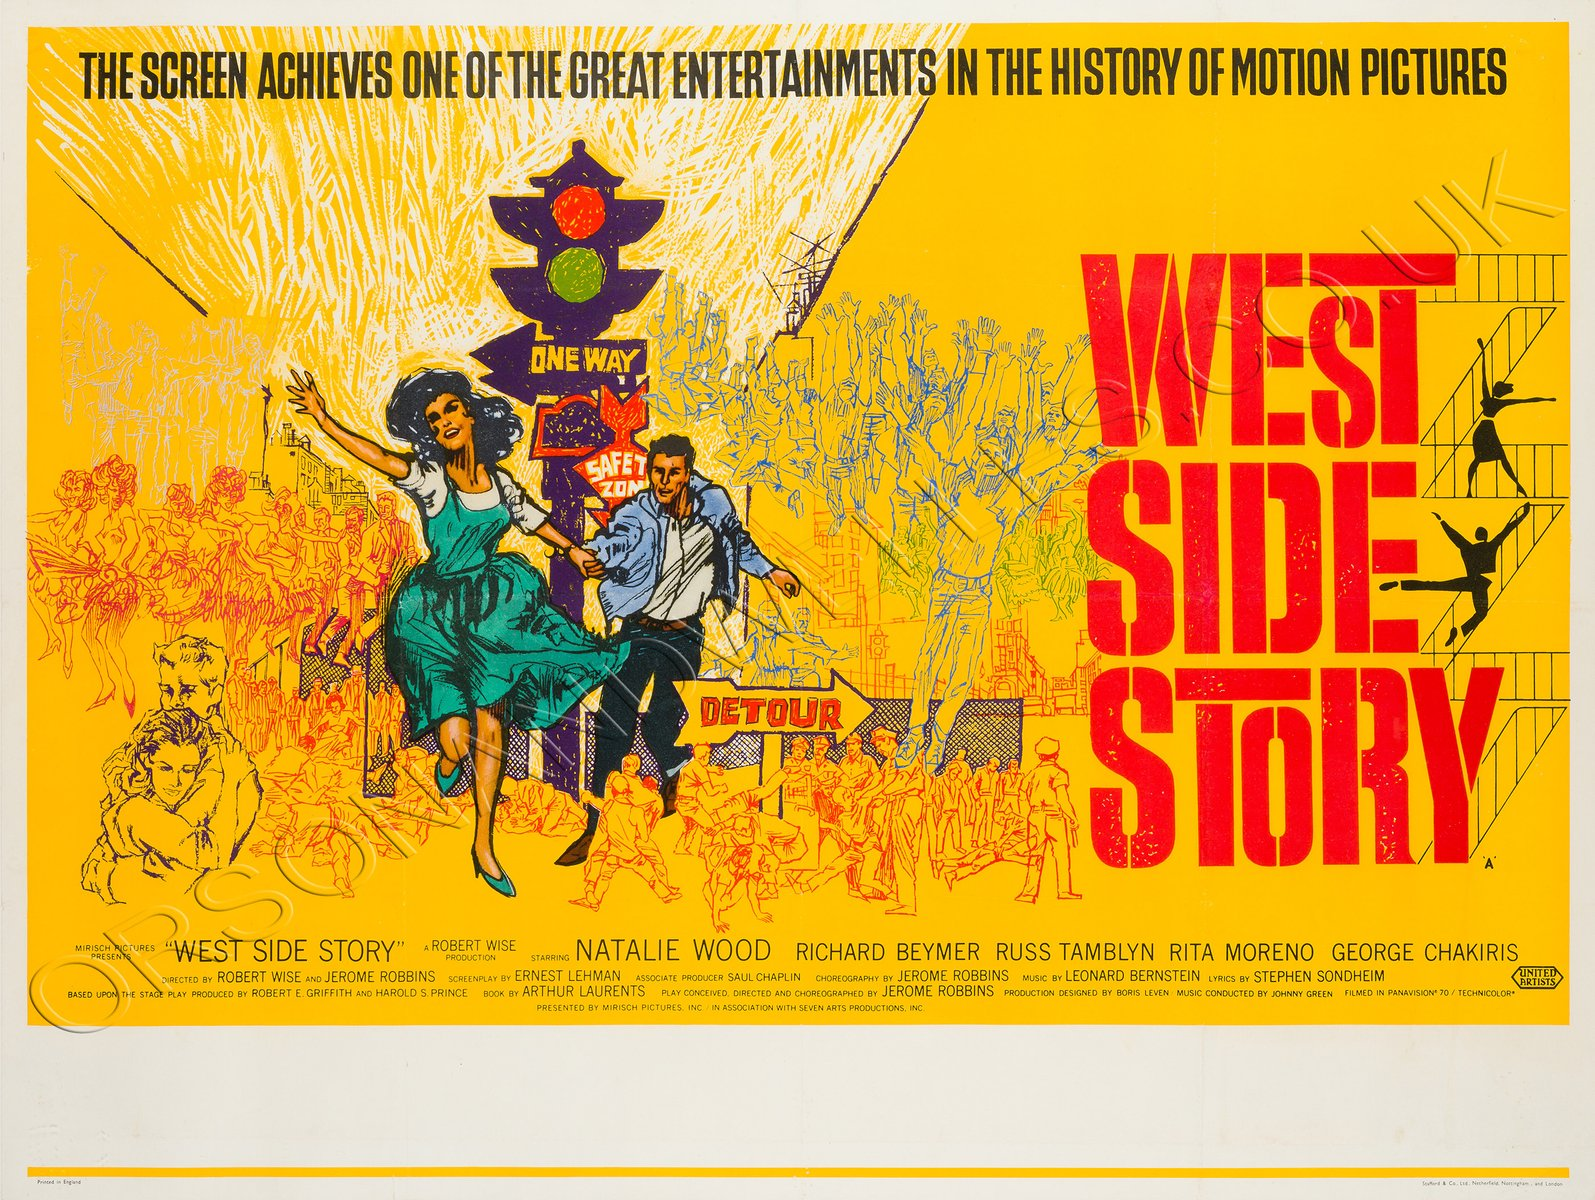 affiche de film west side story vintage 1961 en vente sur pamono. Black Bedroom Furniture Sets. Home Design Ideas